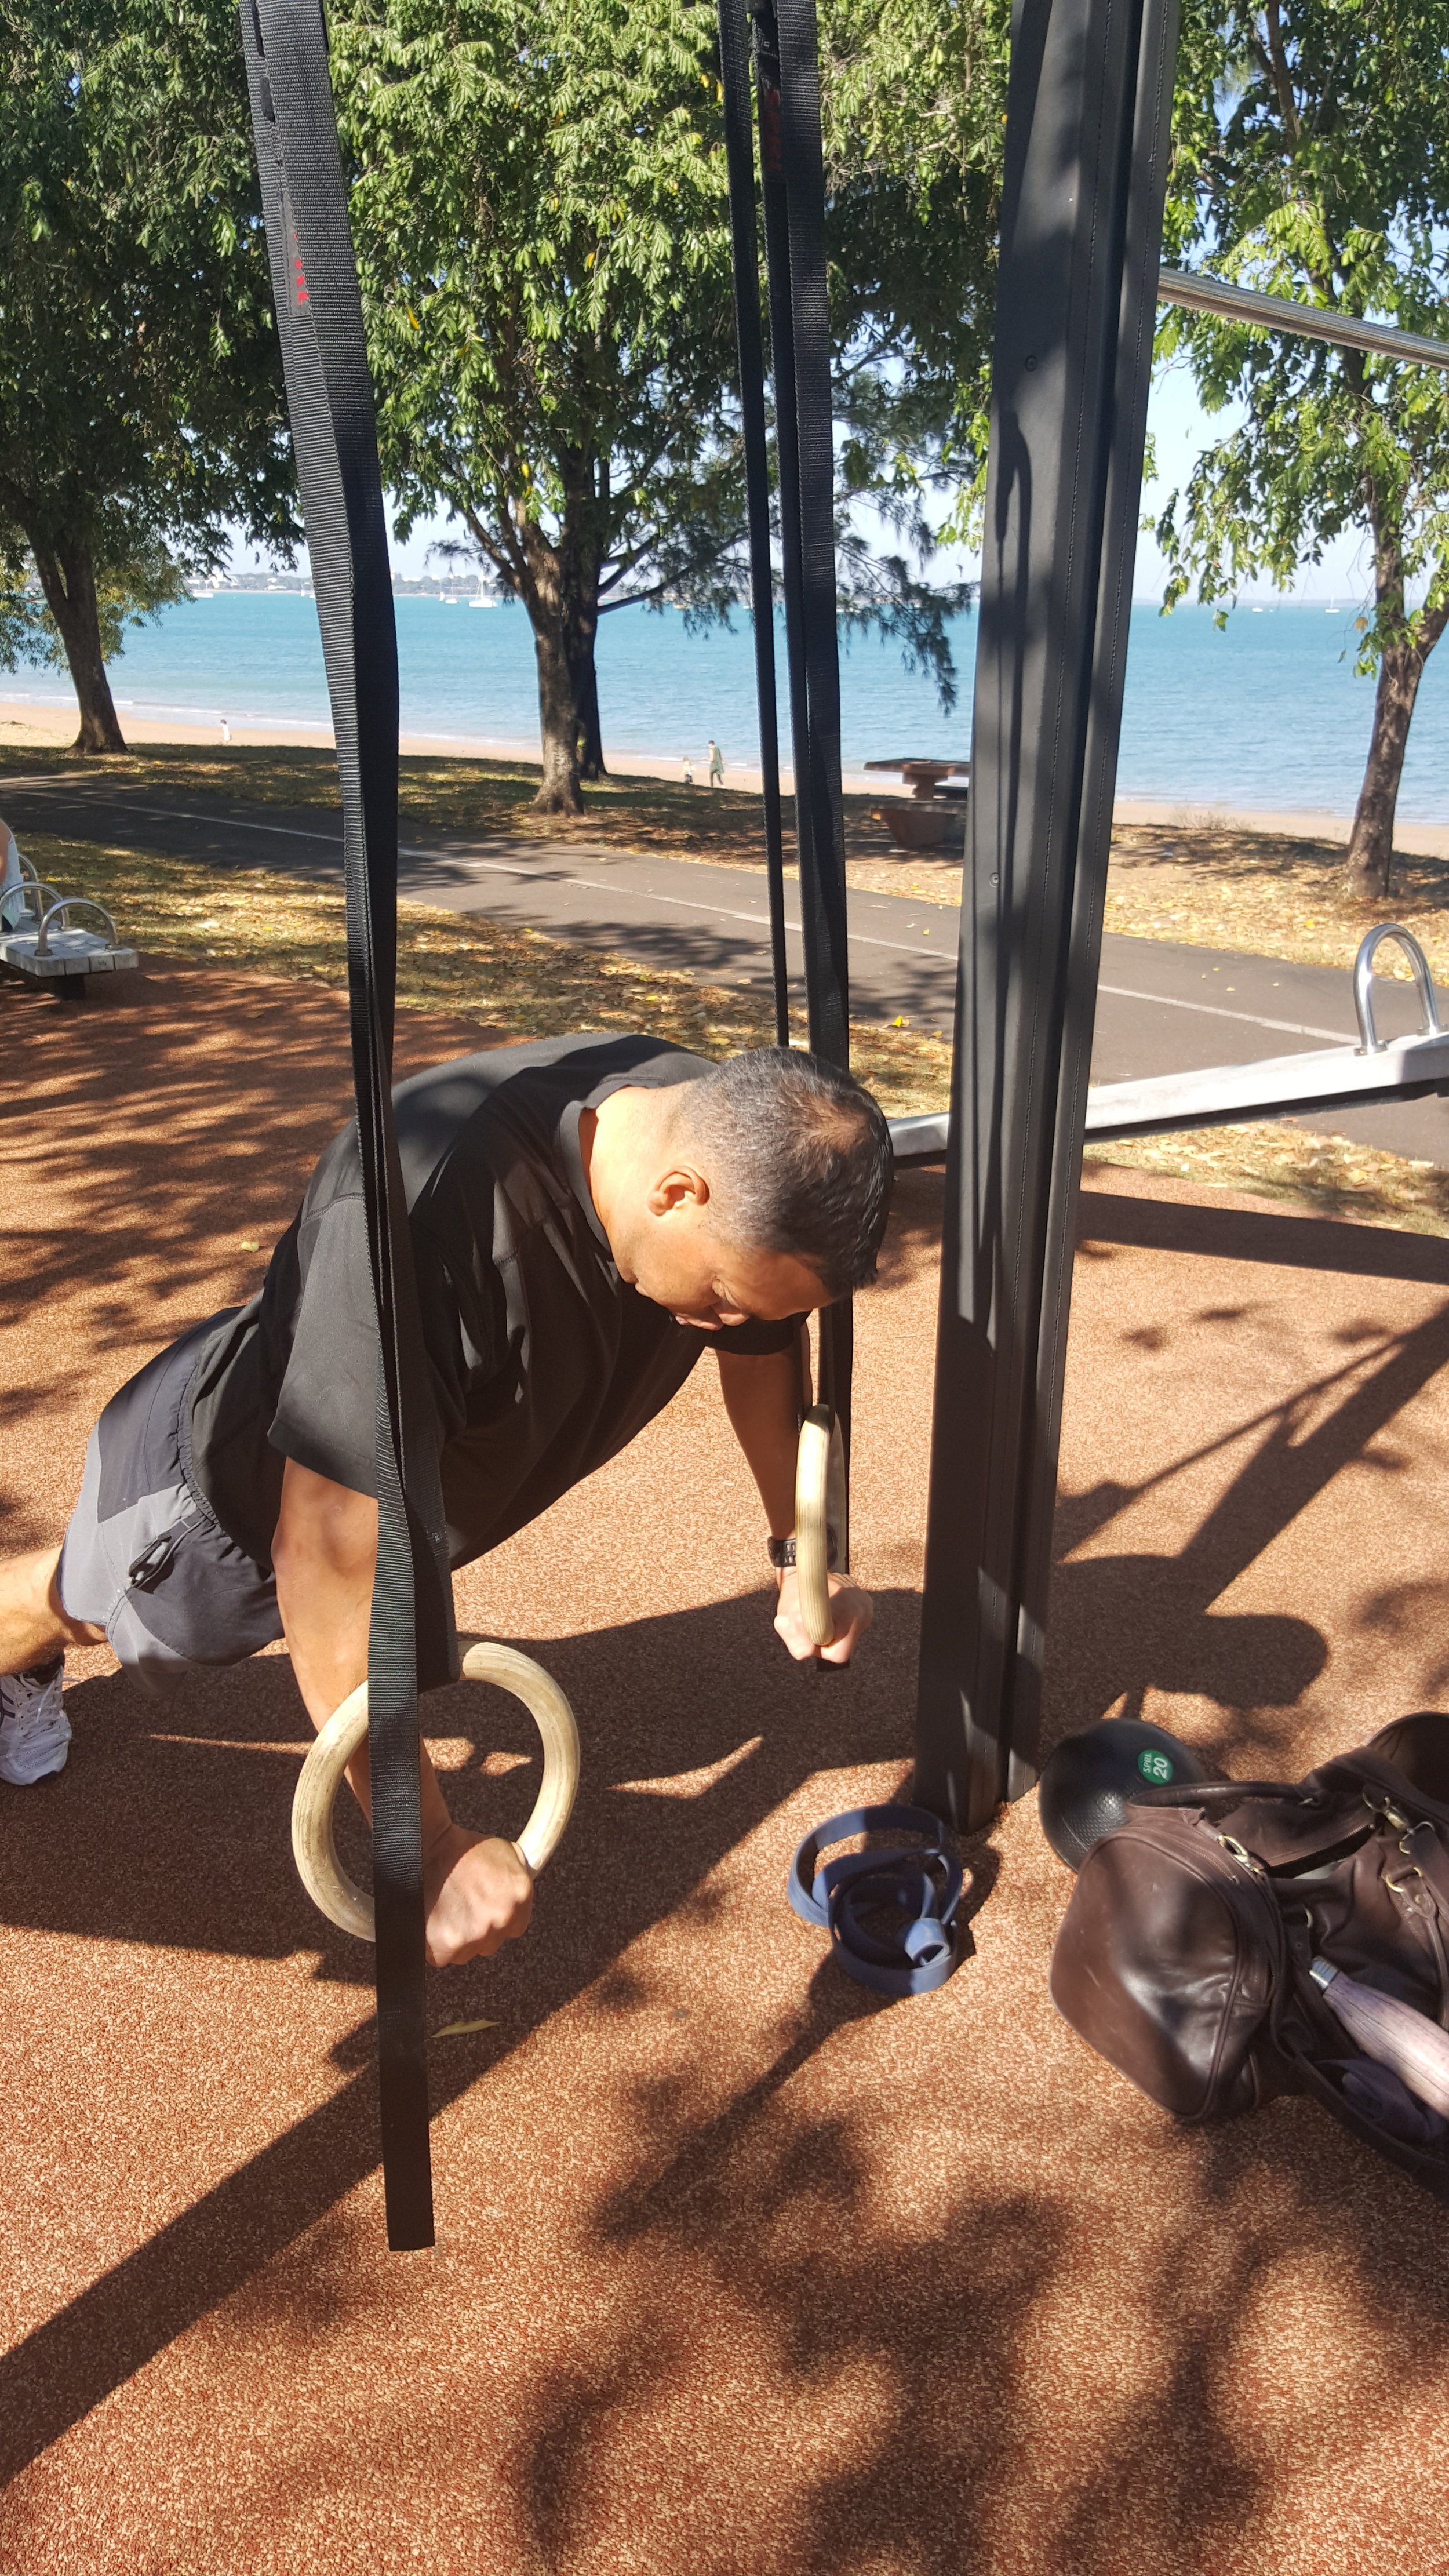 Versatile and effective, Gymnastic Rings are a great tool to compliment your home gym.